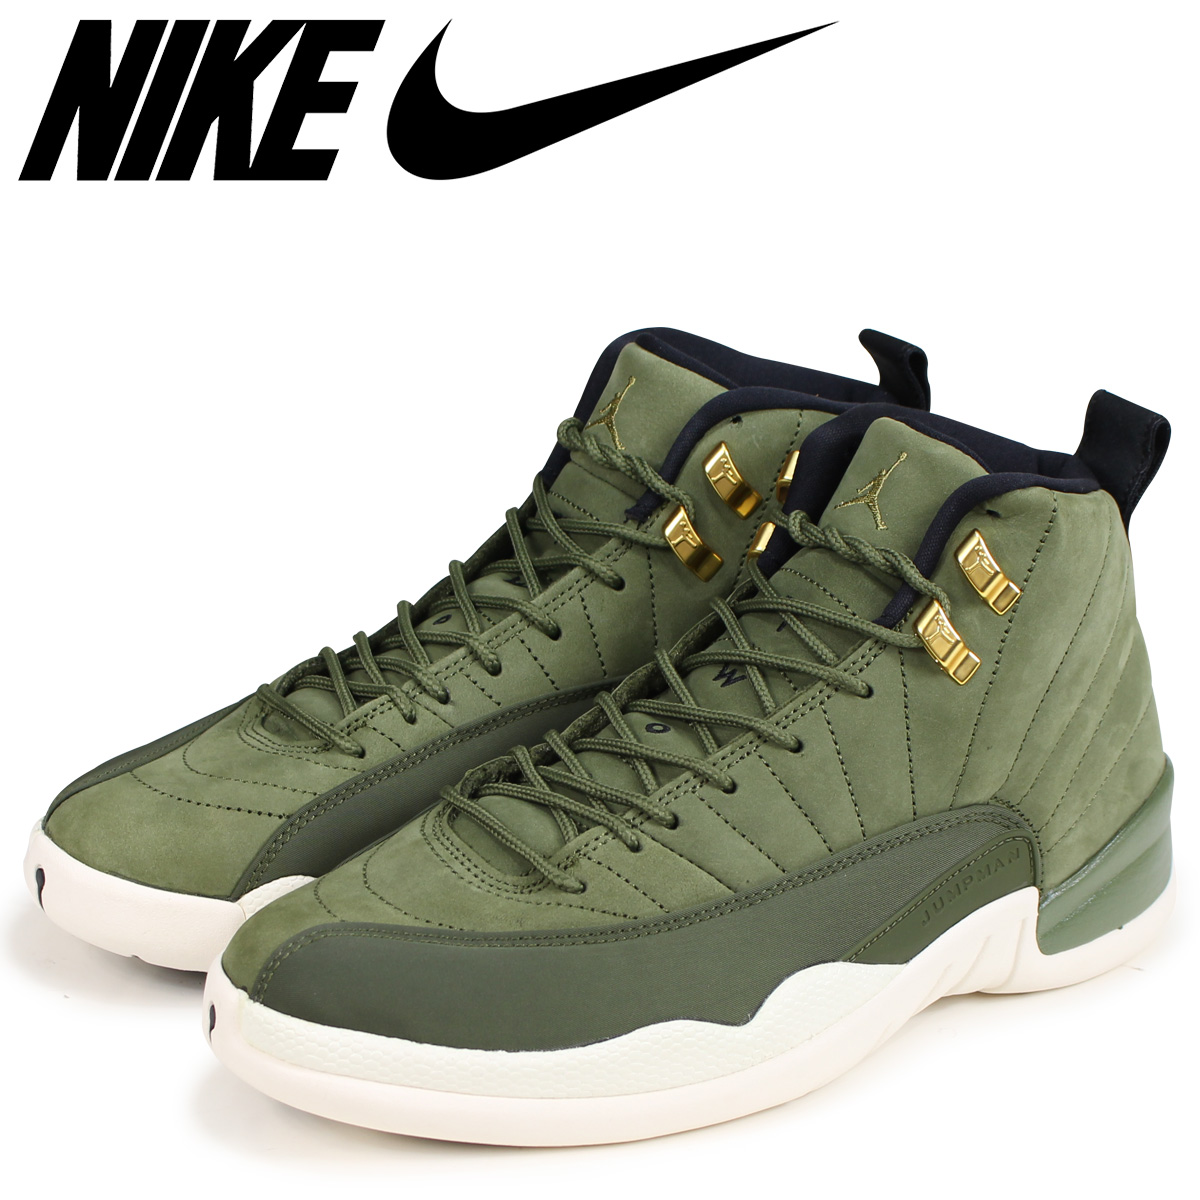 lowest price 2df2b 56fd0 NIKE Nike Air Jordan 12 nostalgic sneakers men AIR JORDAN 12 RETRO  130,690-301 olive